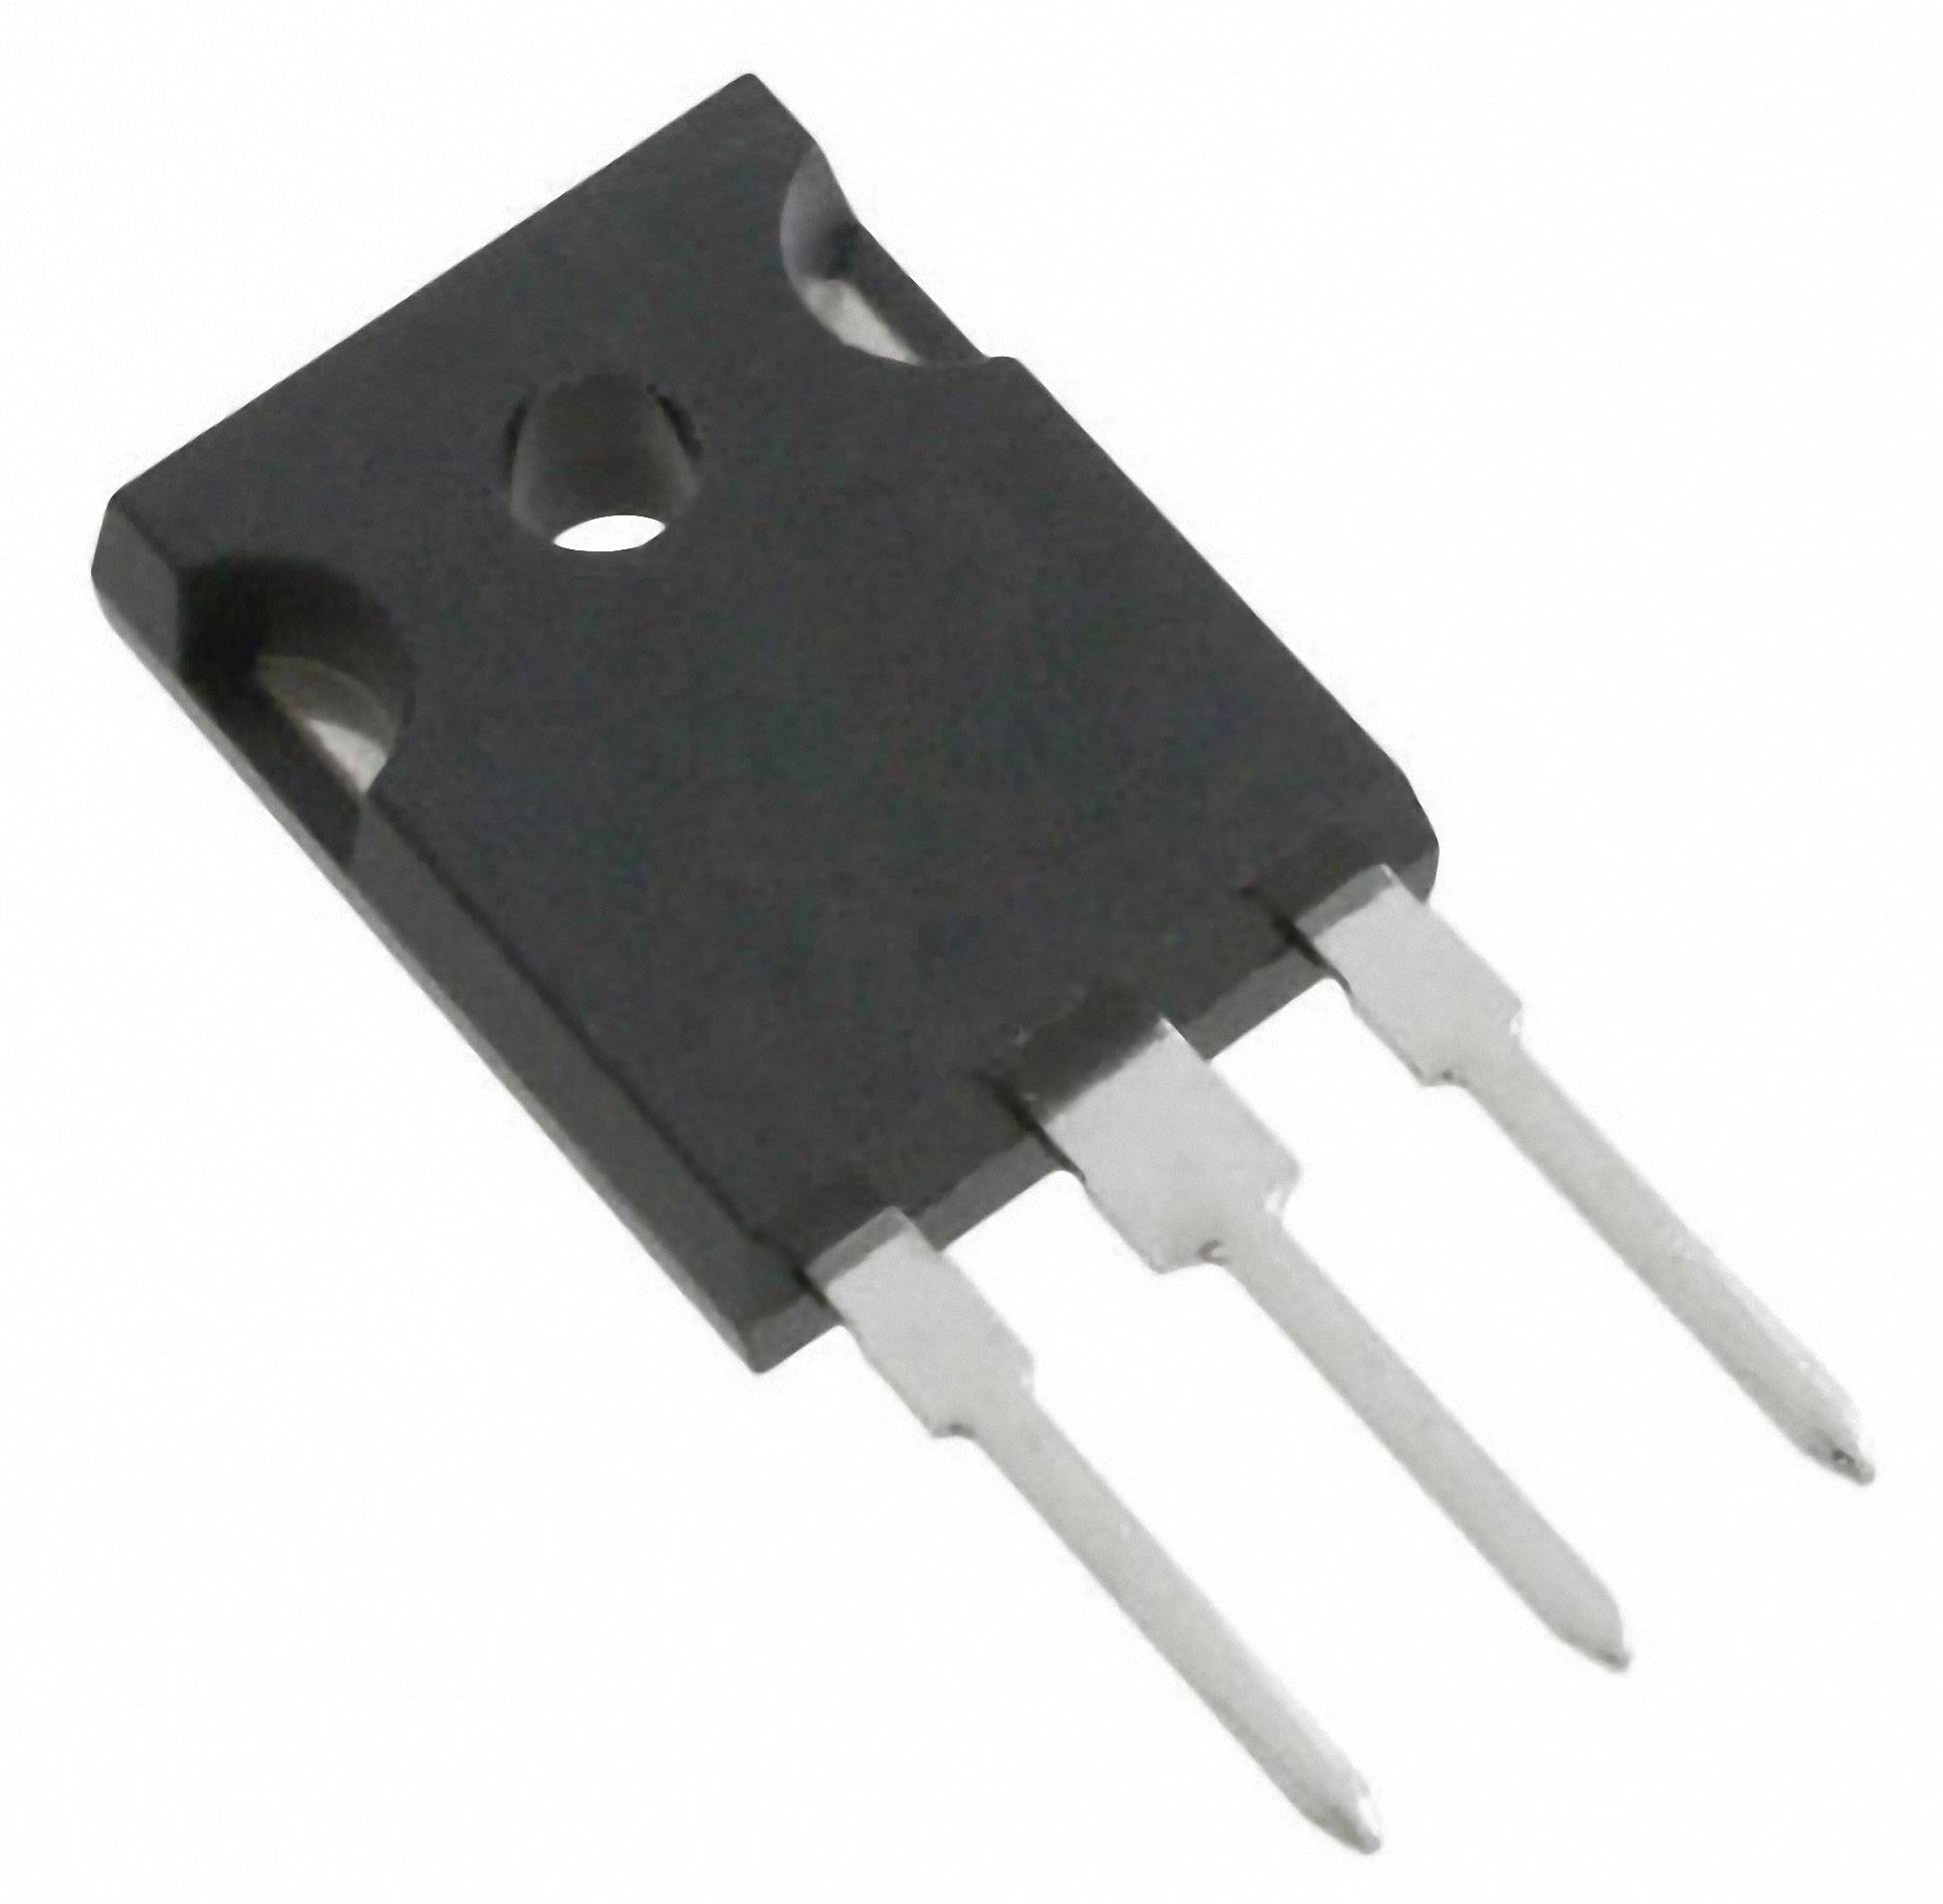 MOSFET Fairchild Semiconductor N kanál N-CH 500V 4 FDH44N50 TO-247-3 FSC